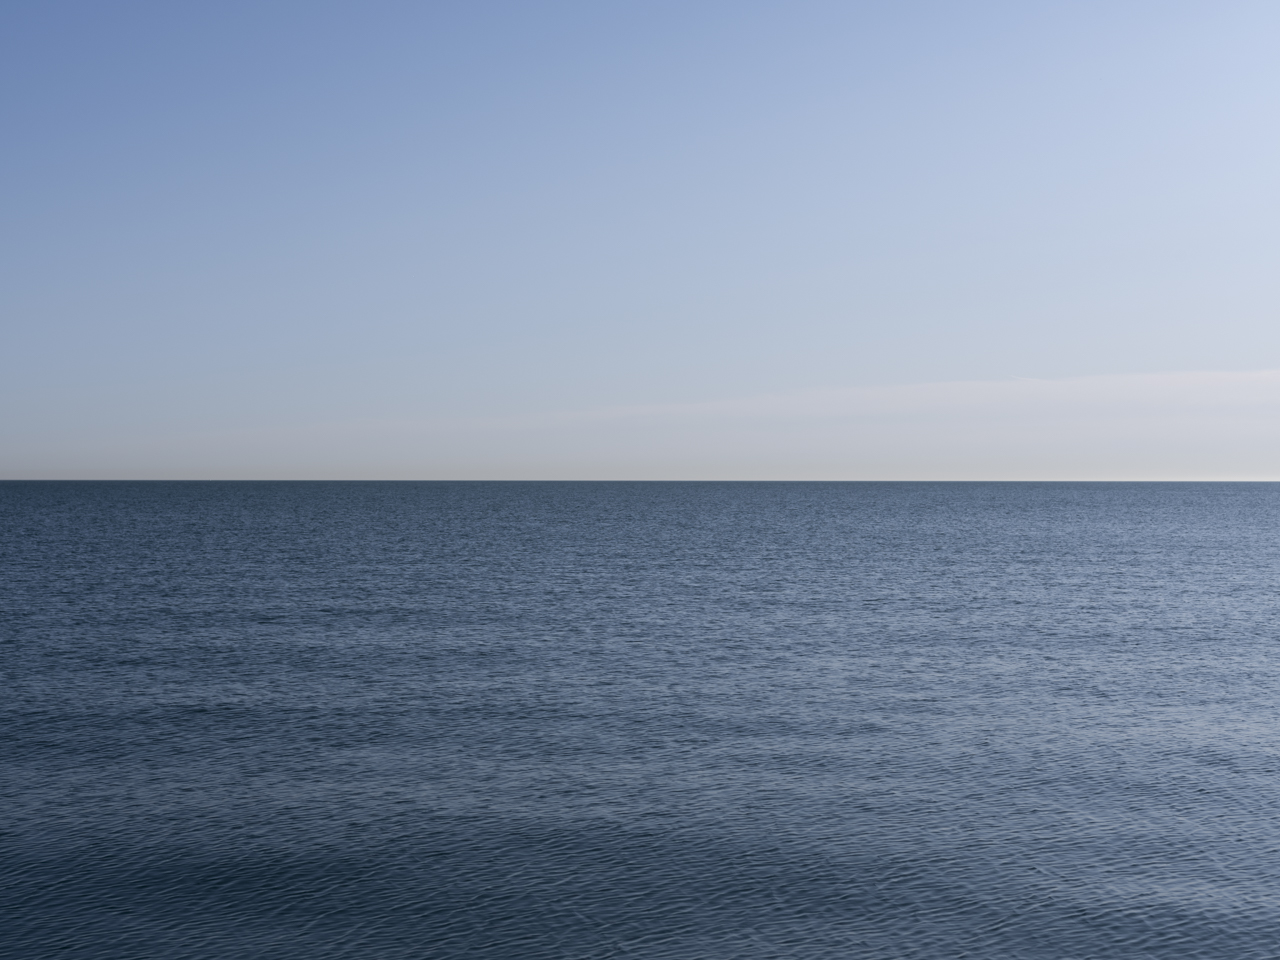 a still blue day with no clouds and slight waves in the water